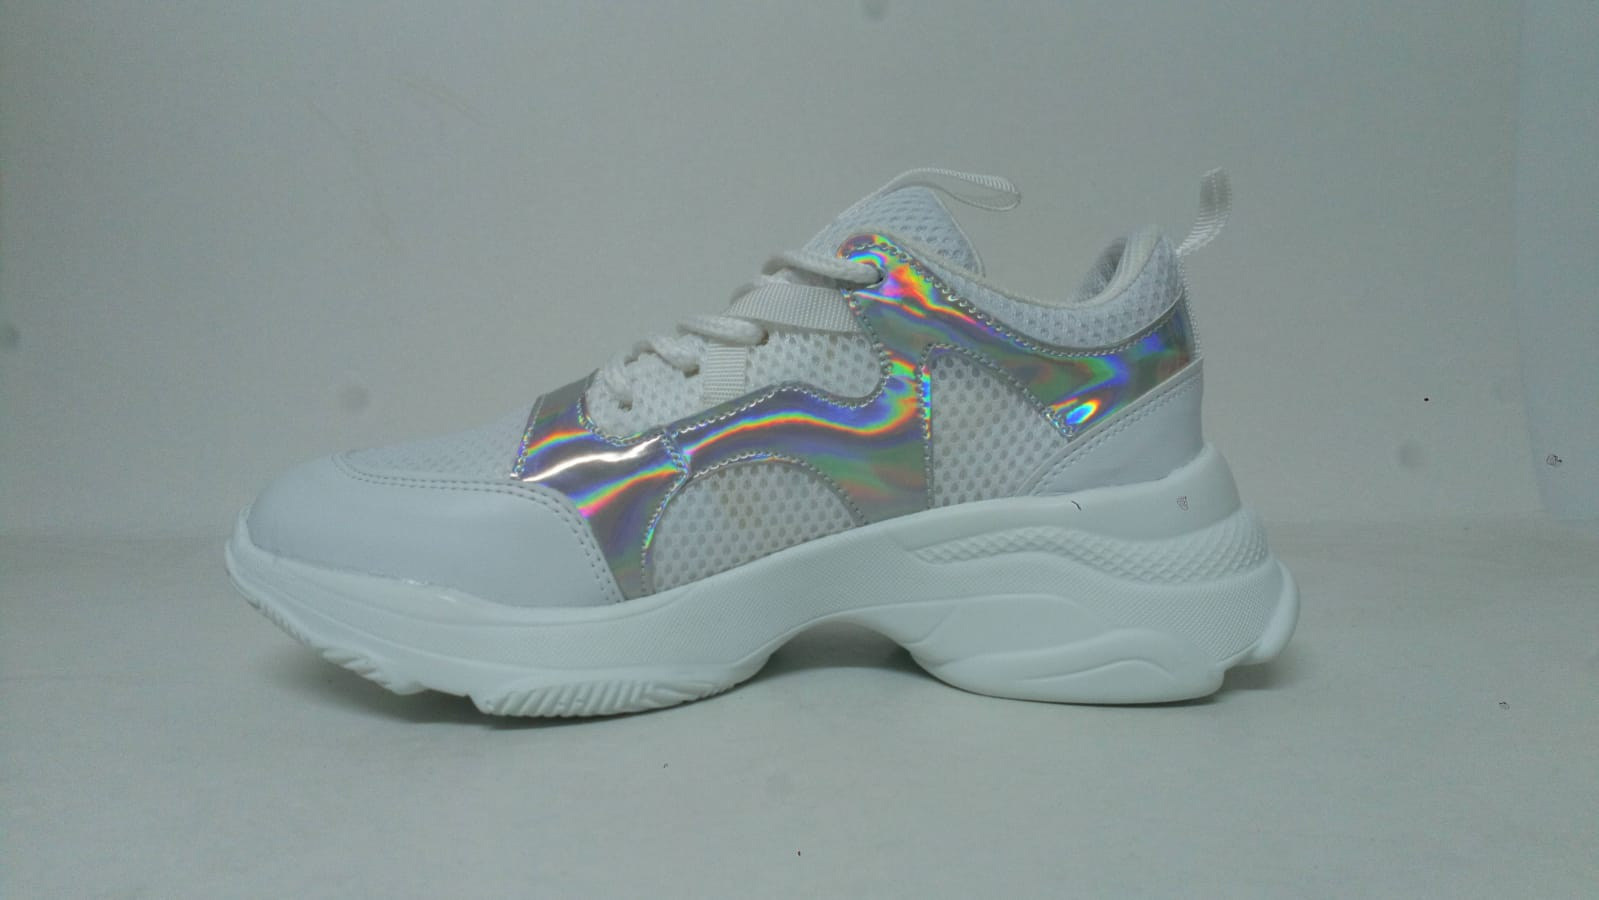 Hello! I will Buy wholesale sports footwear. At least 1000 pairs